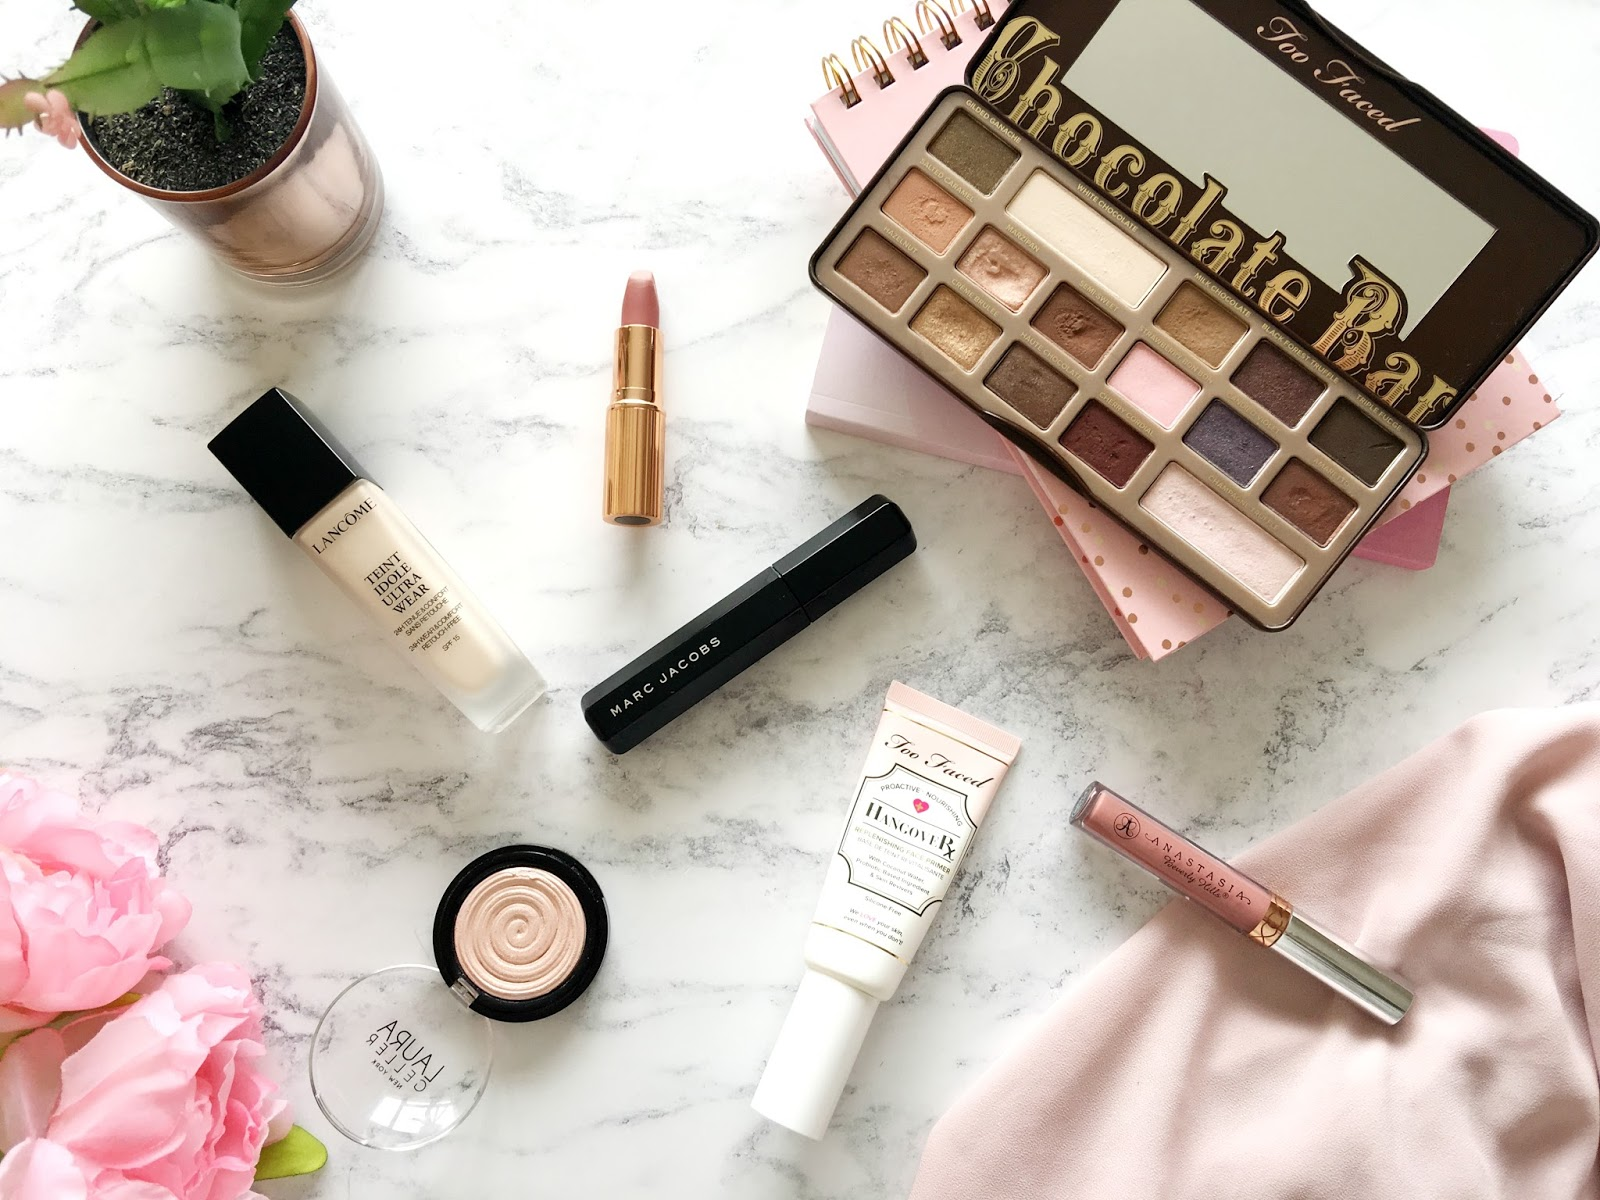 High End Makeup that's Worth the Money